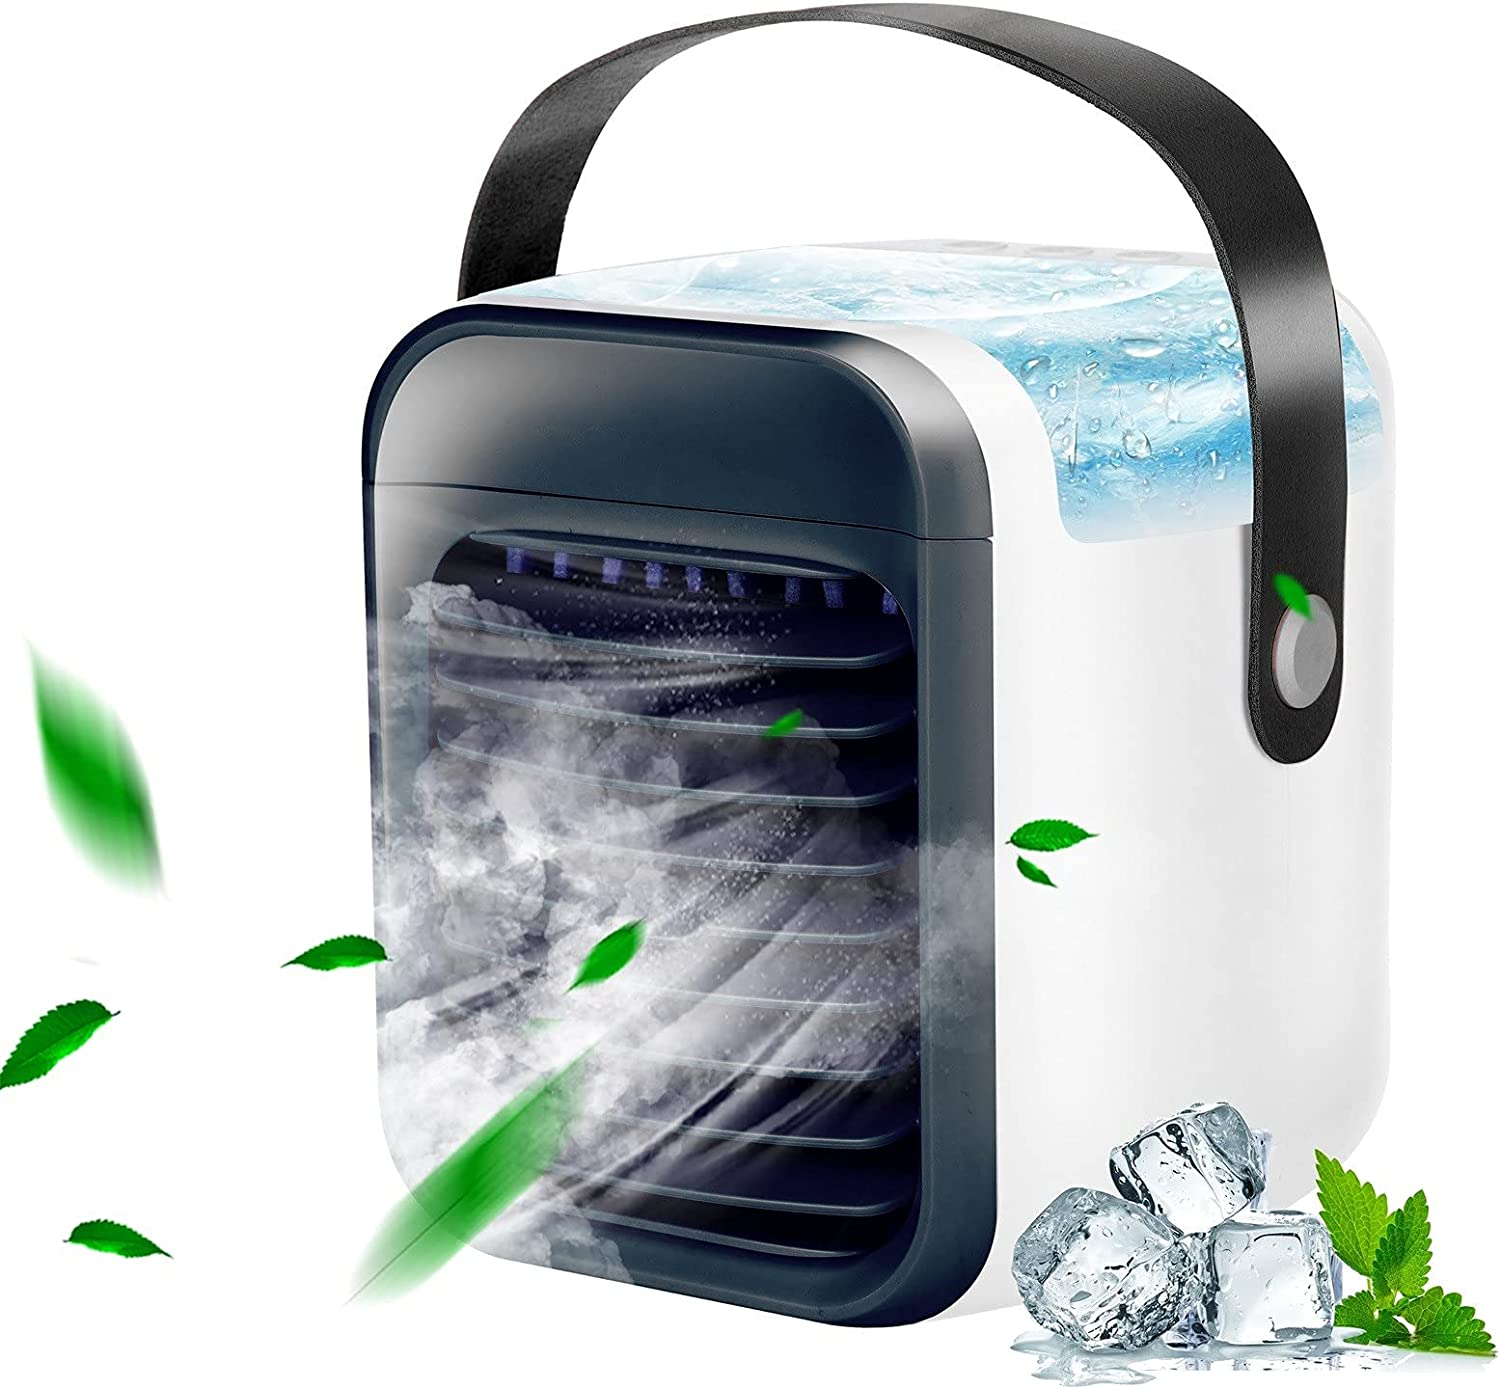 Personal Outlet Kansas City Mall ☆ Free Shipping Air Cooler bestheart Portable Conditioner Recharge